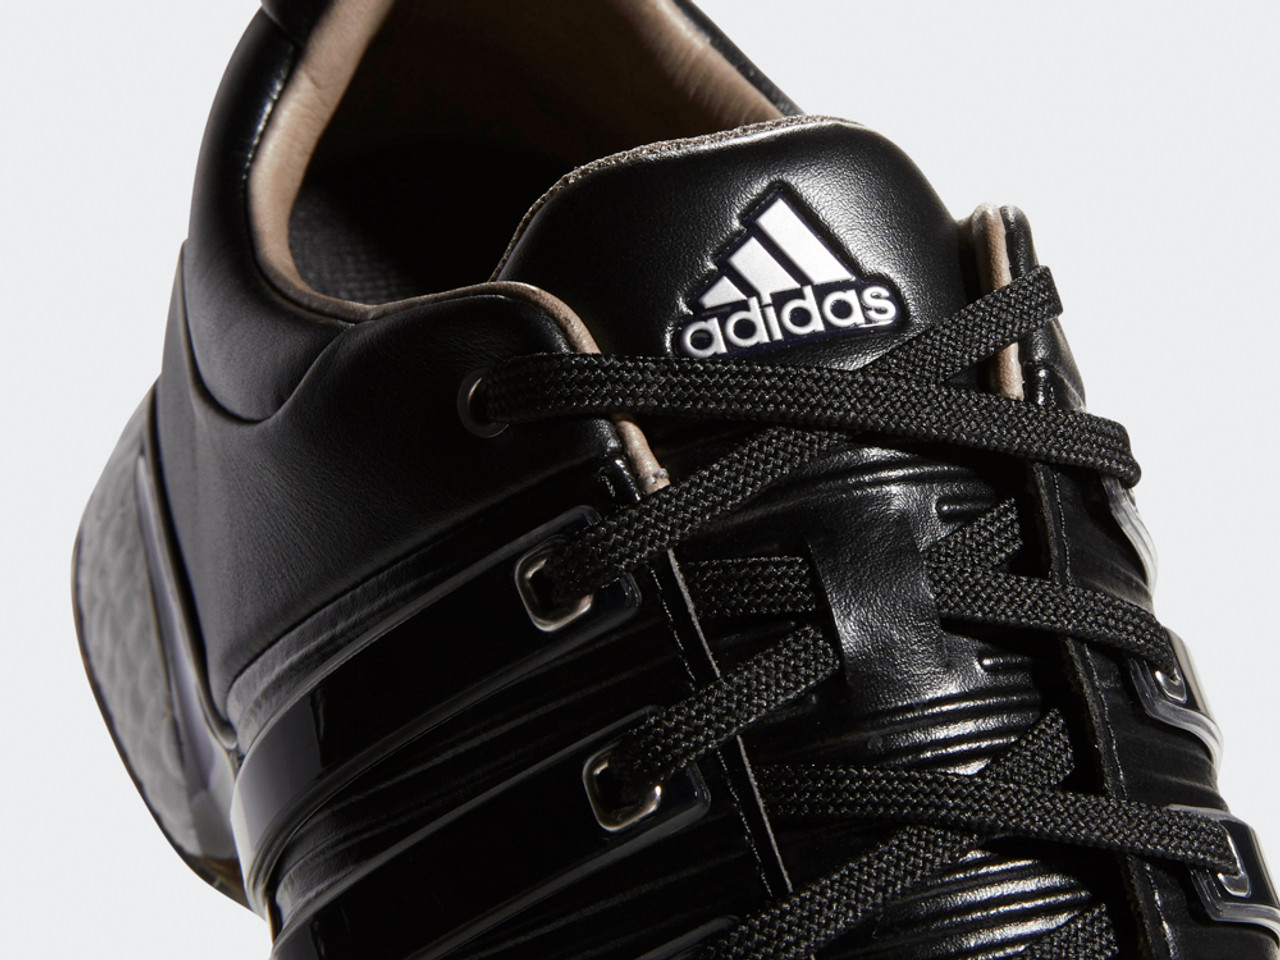 f8a3d6dd2a277 Adidas Tour360 XT Golf Shoes - Core Black Silver Met. - Mens For ...